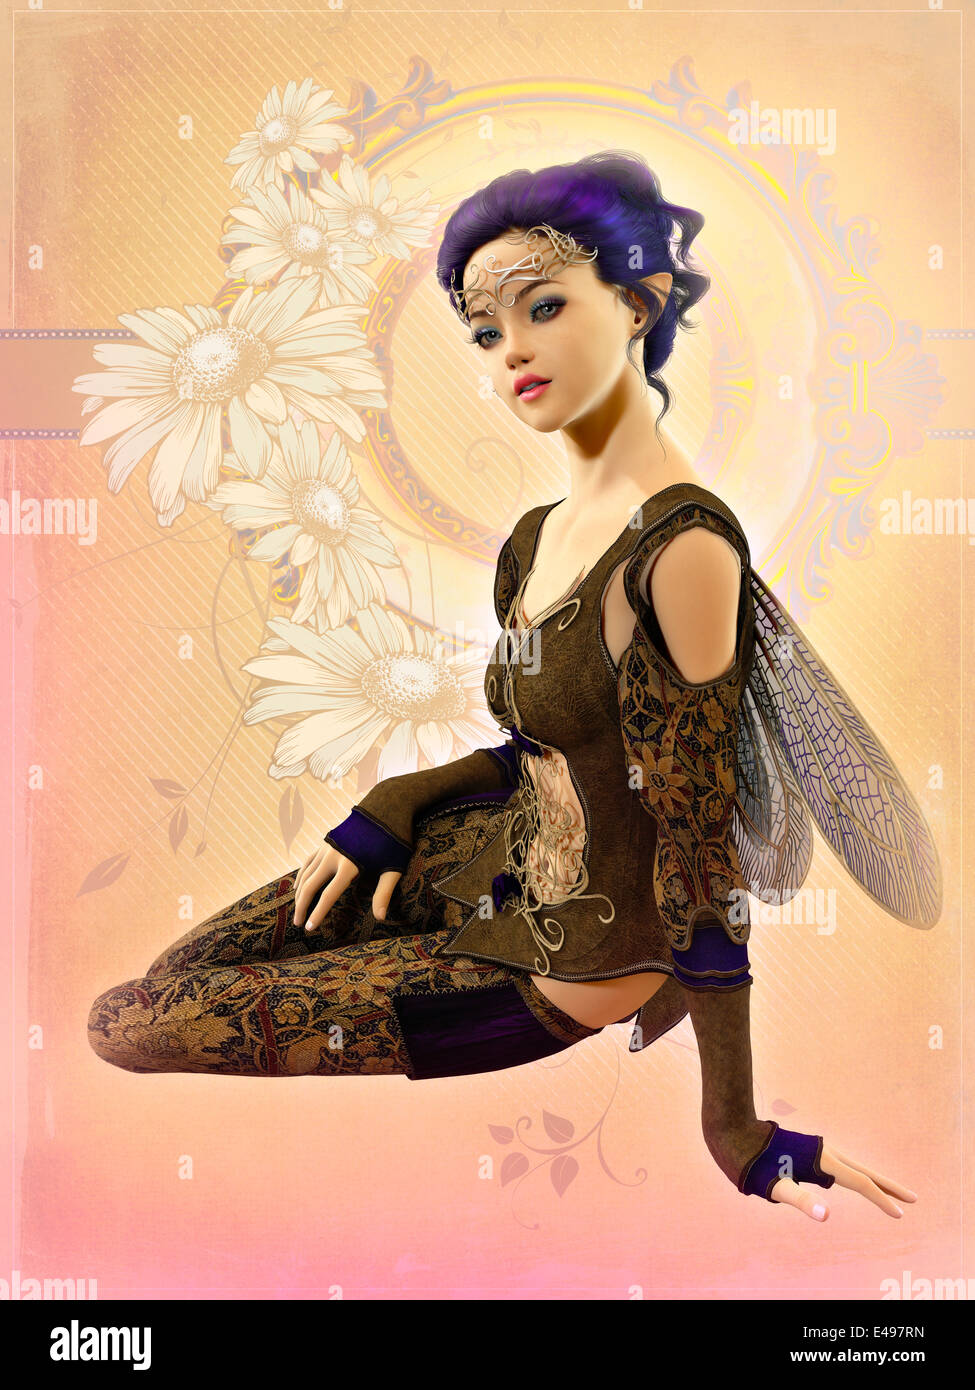 3d computer graphics of a cute fairy with purple hair and dragonfly wings - Stock Image